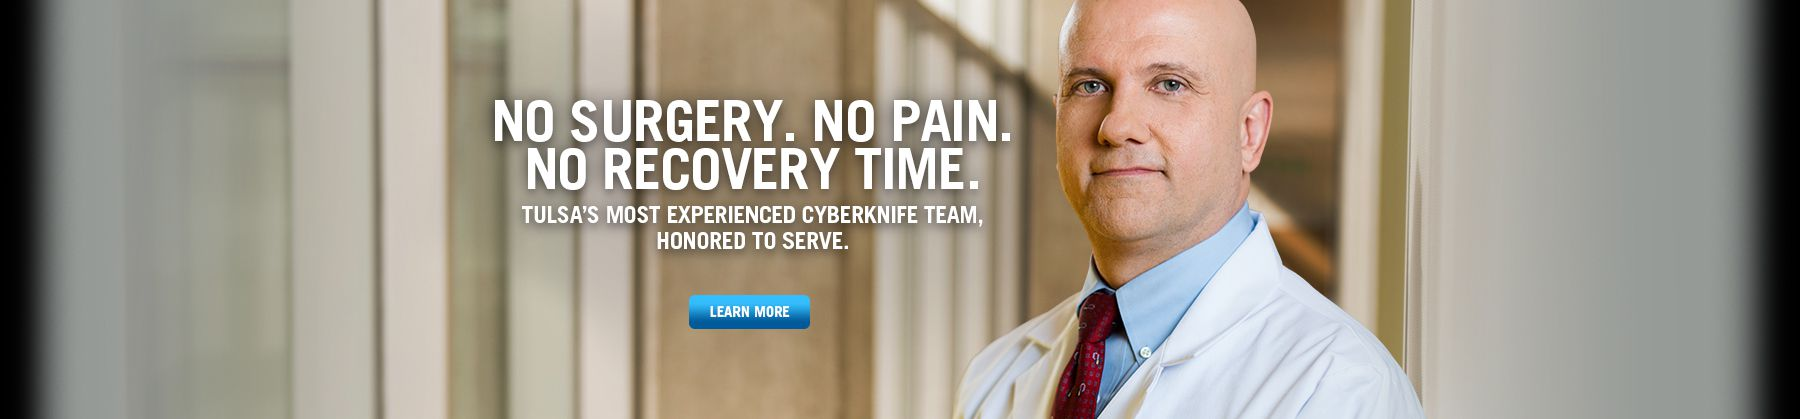 Updated Tulsa's Most Experienced CyberKnife Team